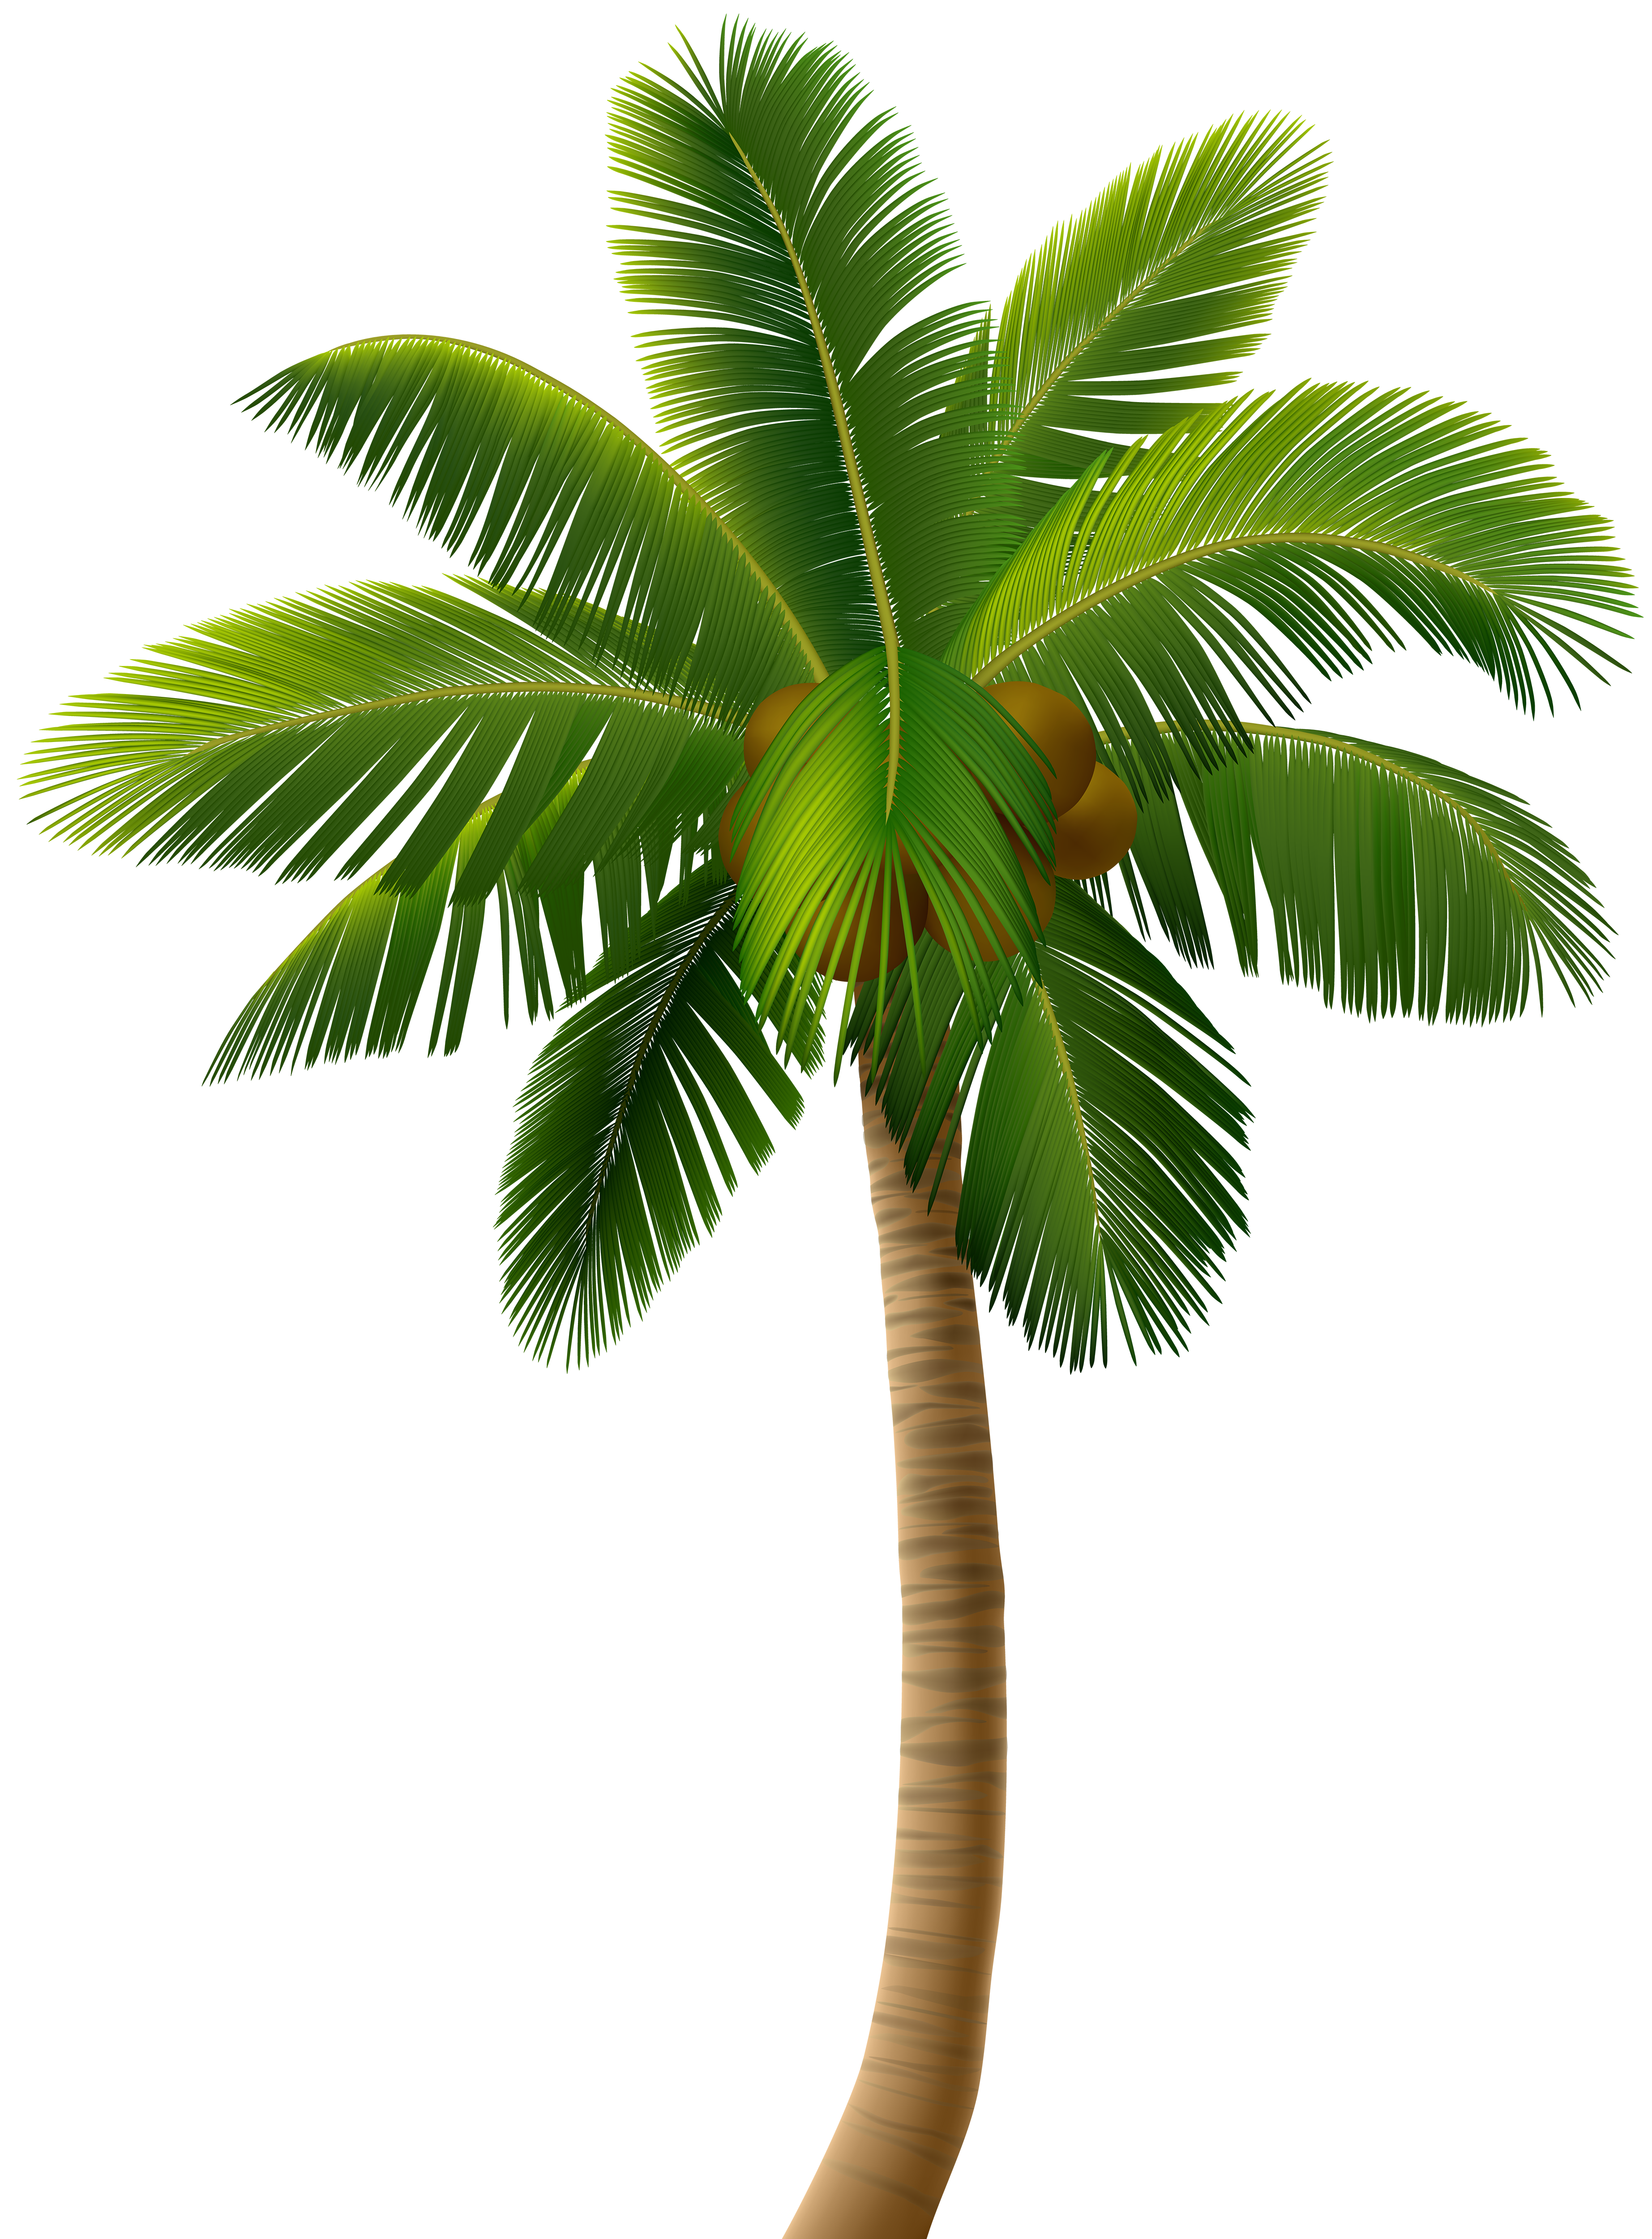 Palm Tree Png Clip Art Image Gallery Yopriceville High Quality Images And Transparent Png Free Clipart Palm Tree Clip Art Palm Tree Png Palm Tree Pictures